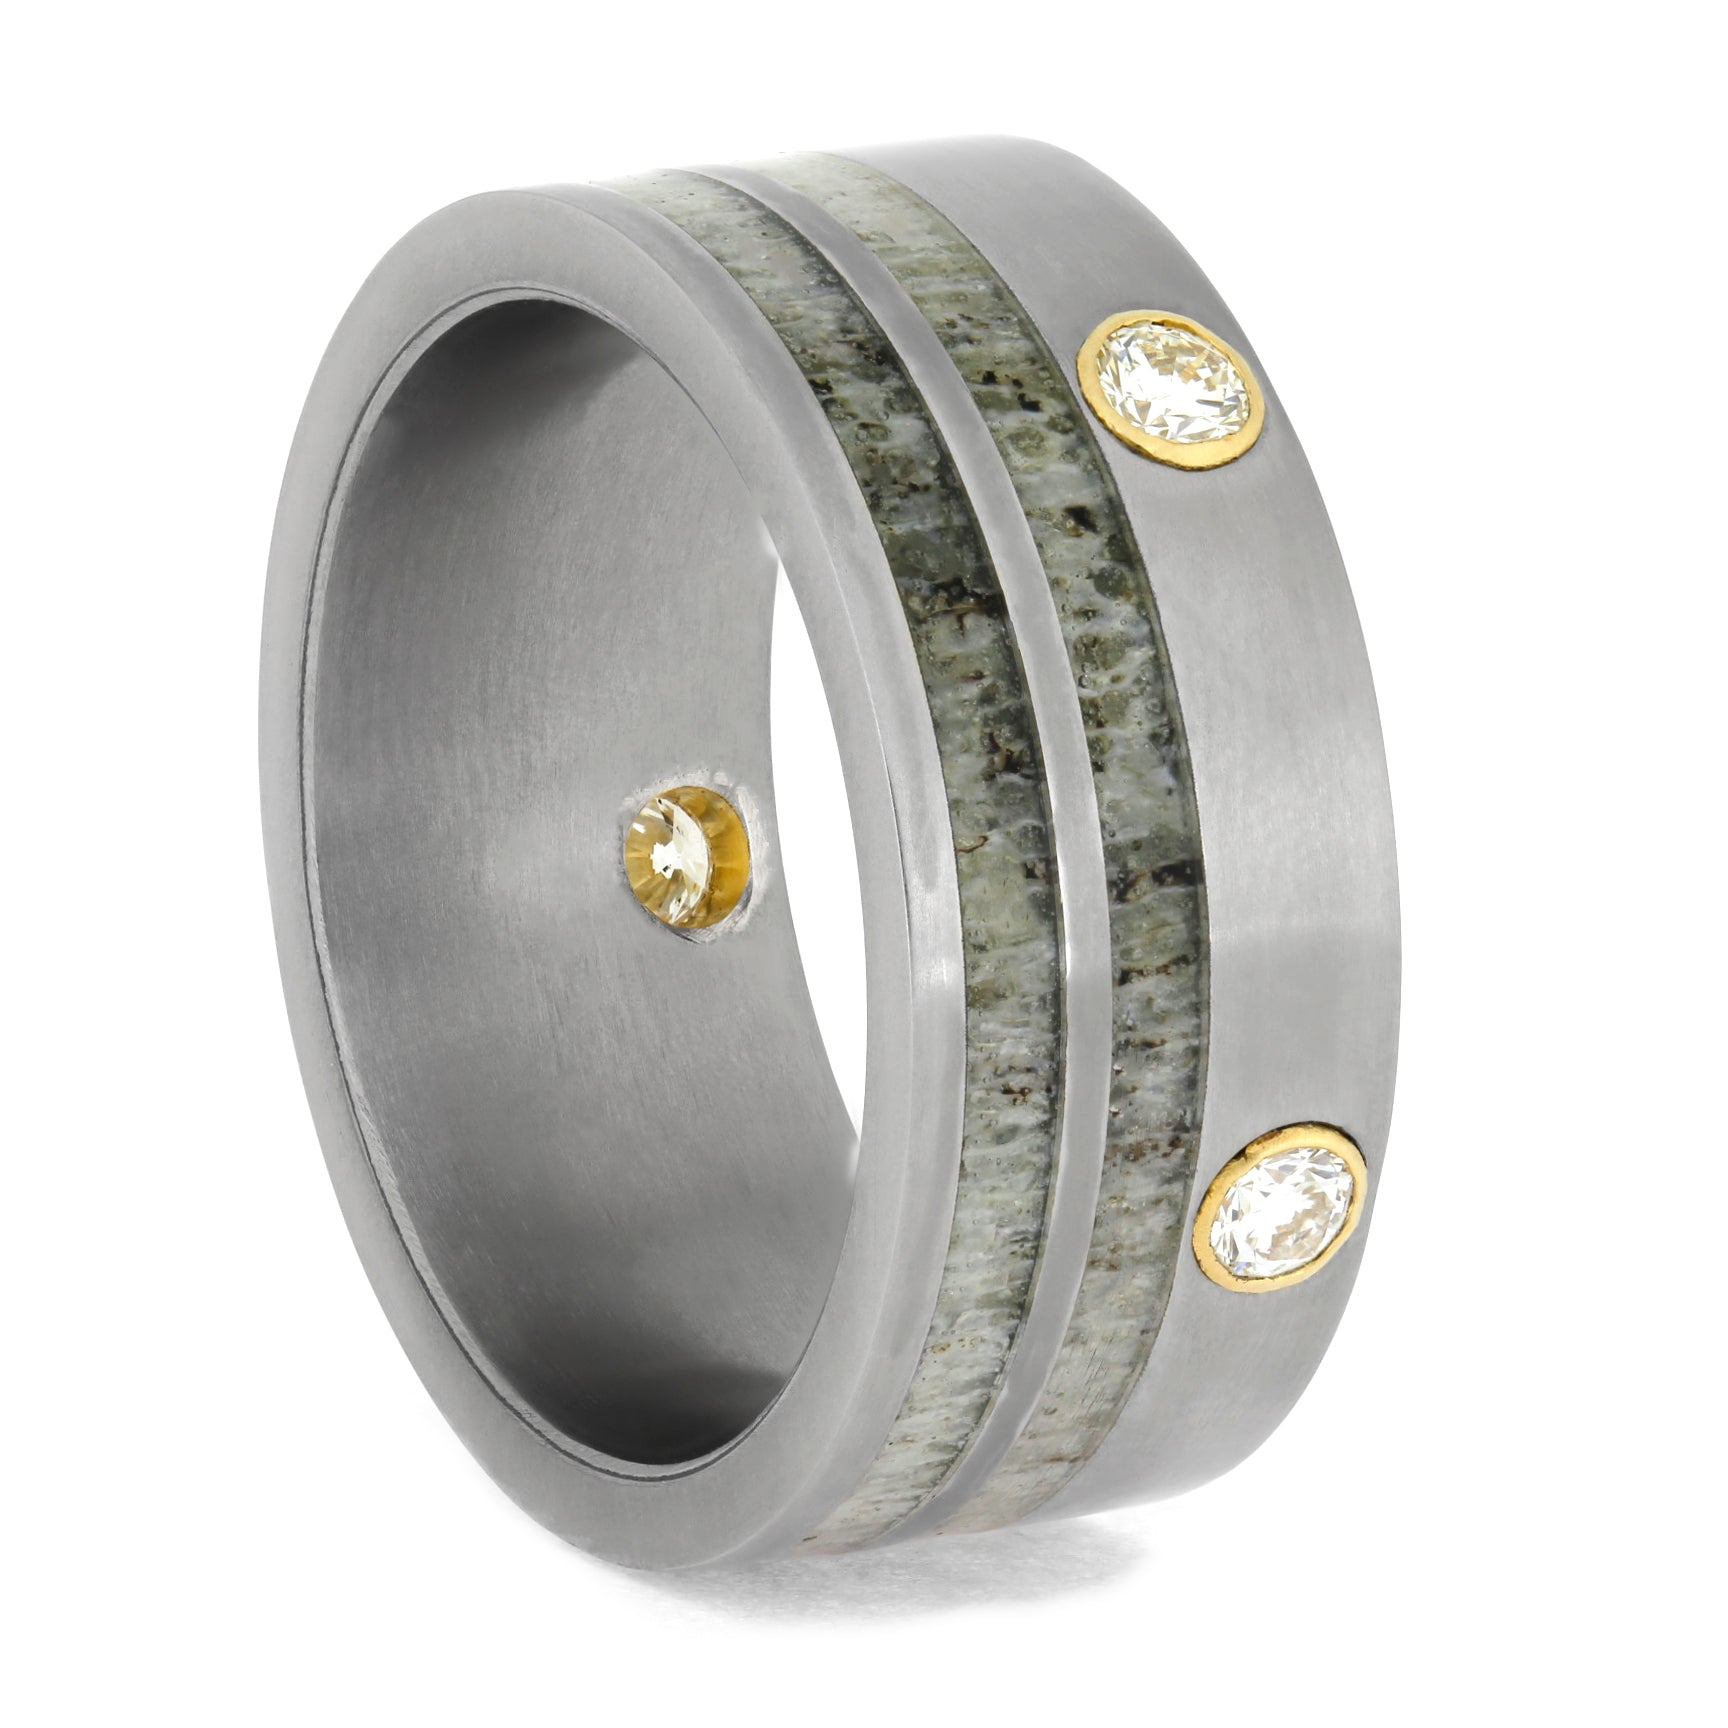 Diamond Ring Accented By Deer Antler In Titanium-1163 - Jewelry by Johan